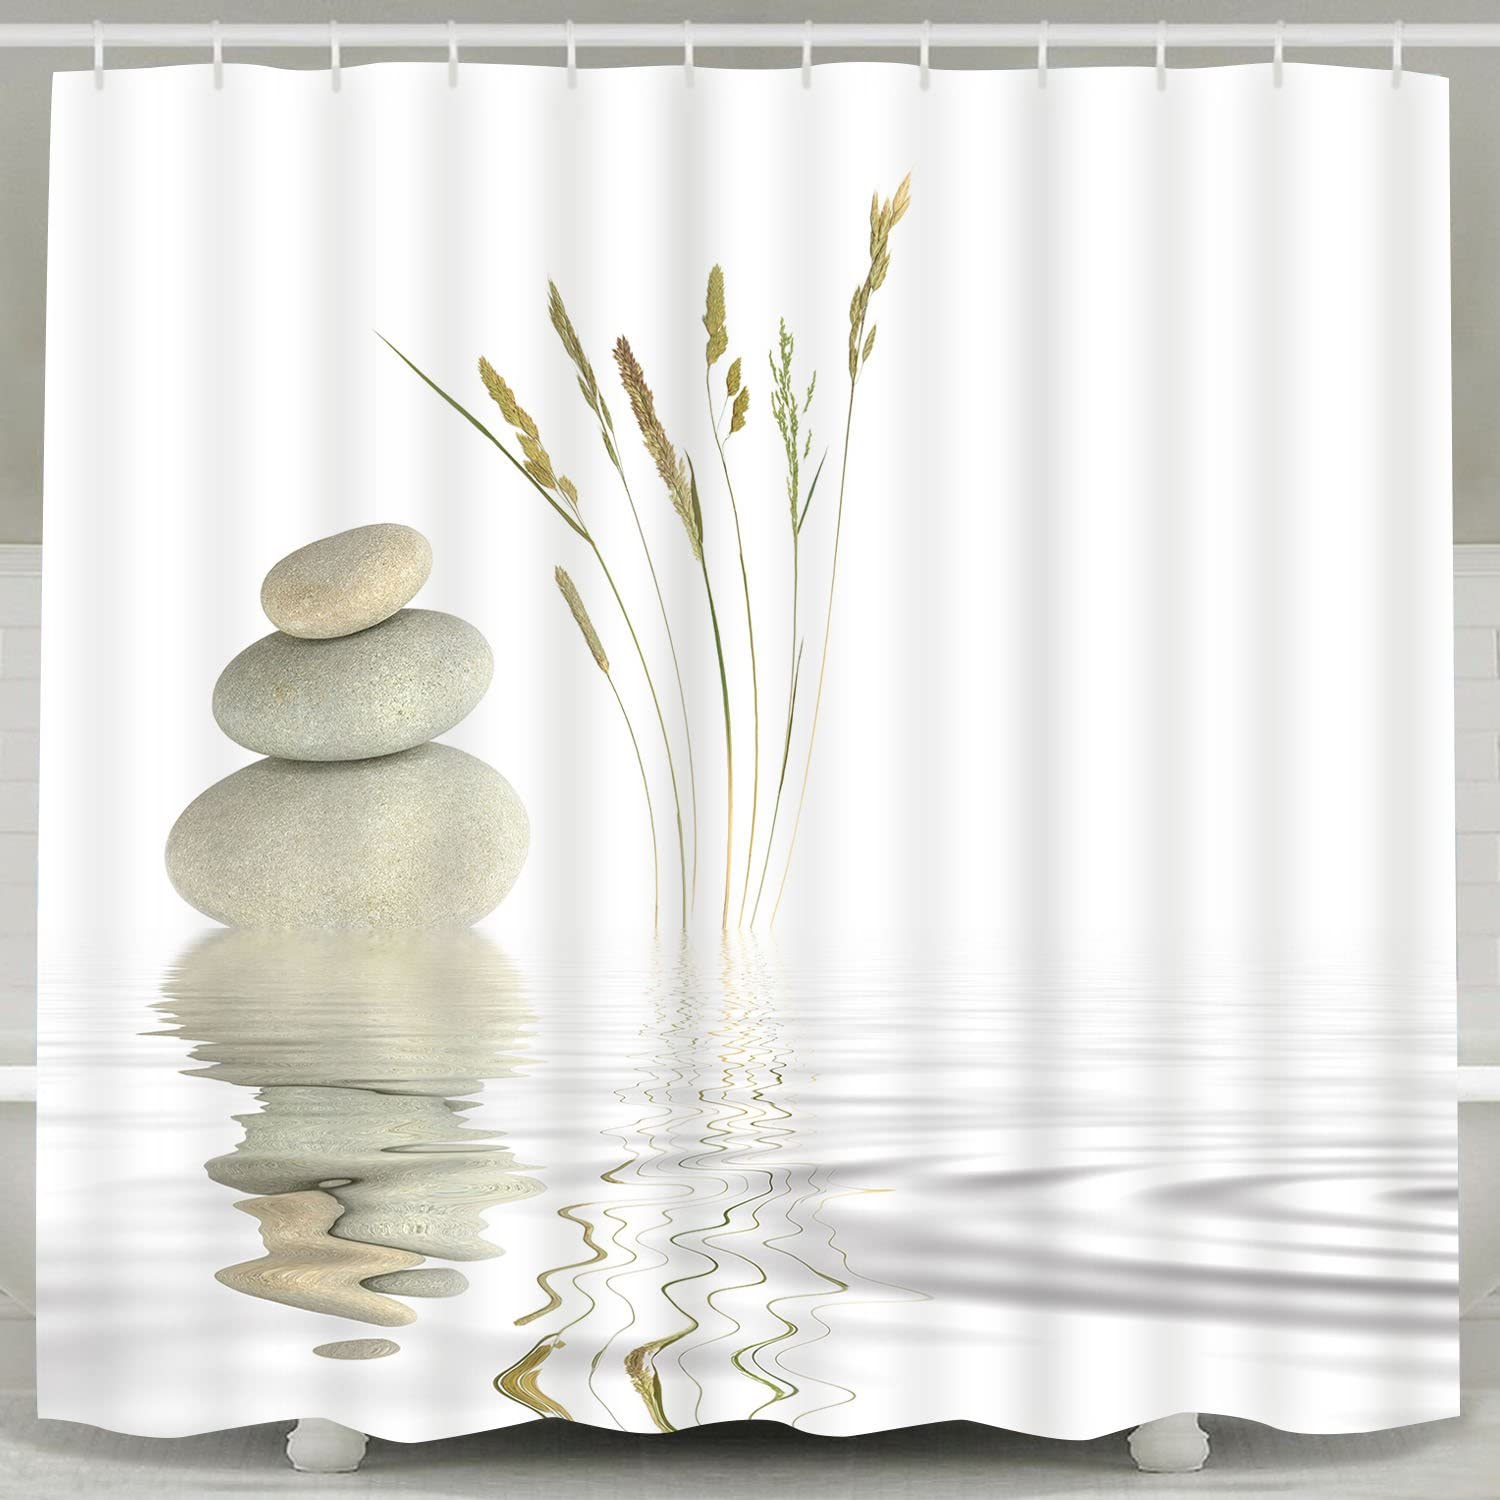 BLEUM CADE Shower Curtain Zen Stone Wild Grass Reflection in Water Shower Curtains 12 Hooks, Meditation Design Waterproof Fabric Bathroom Shower Curtain